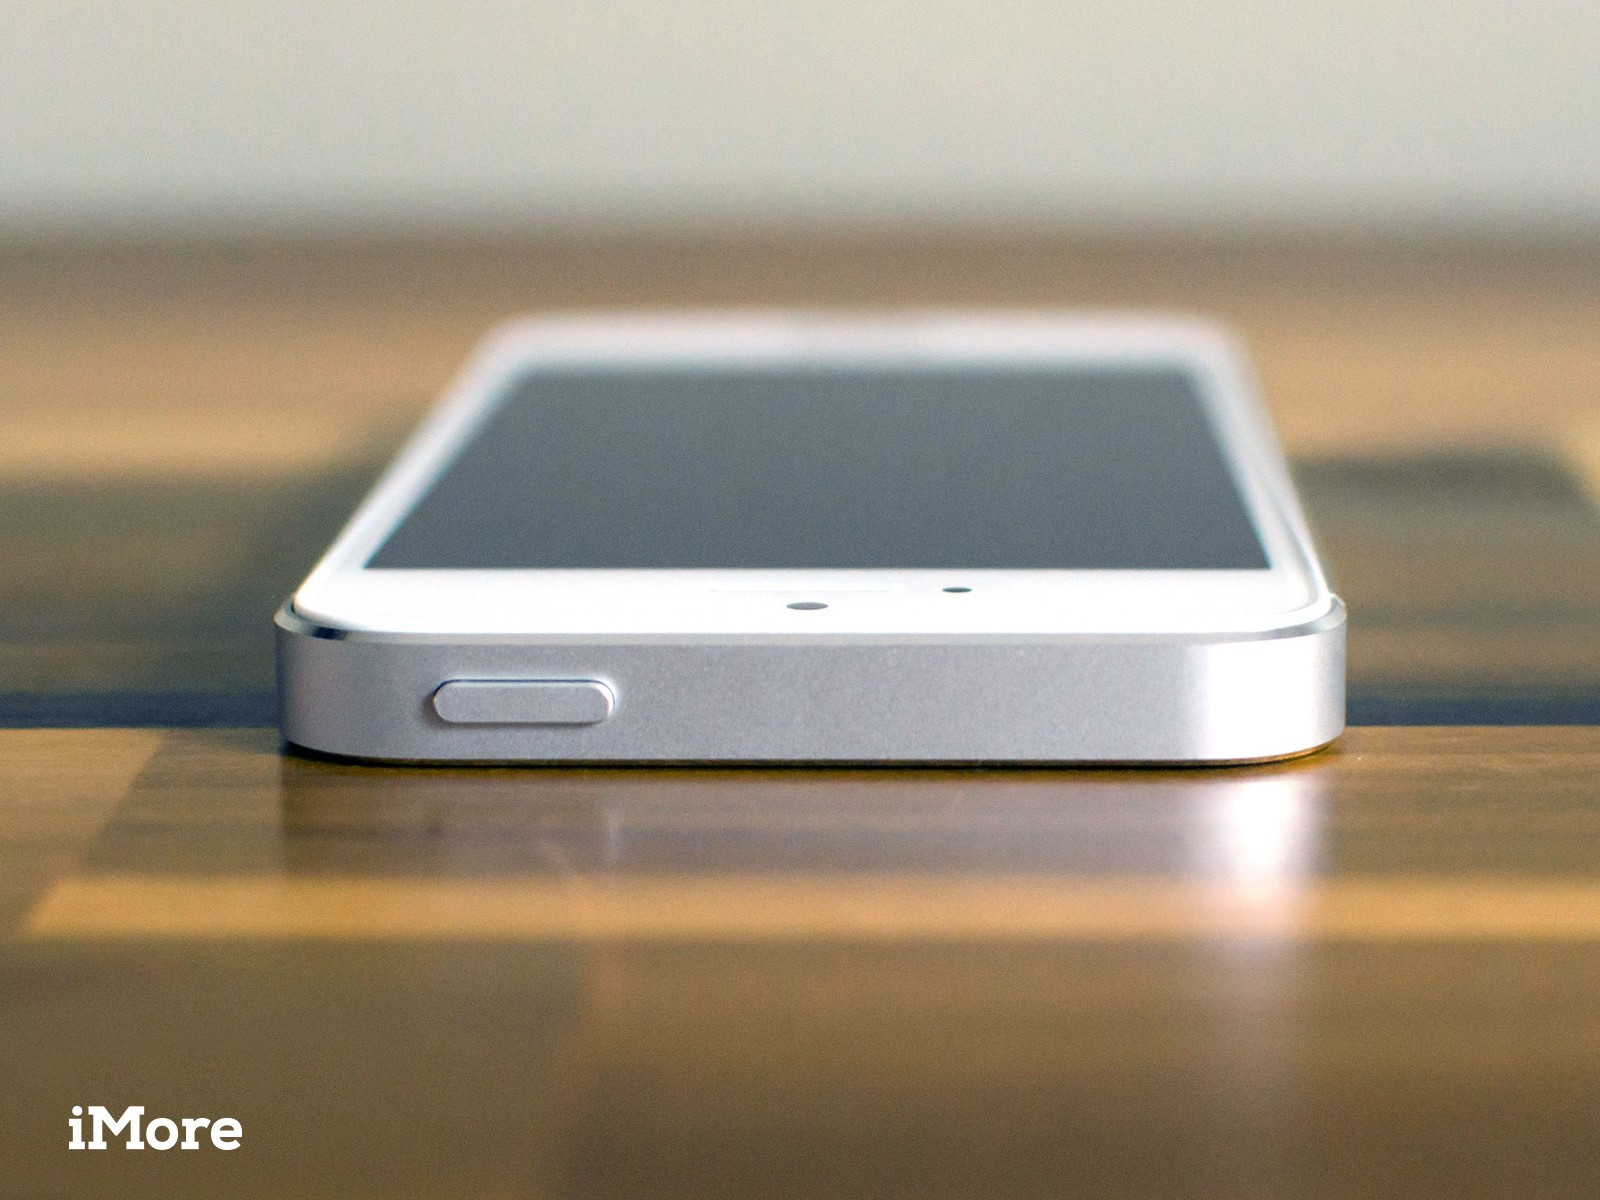 Taking in your iPhone 5 for the sleep button fix but really want to upgrade to an iPhone 5s? There may be a $350 trade in for you!